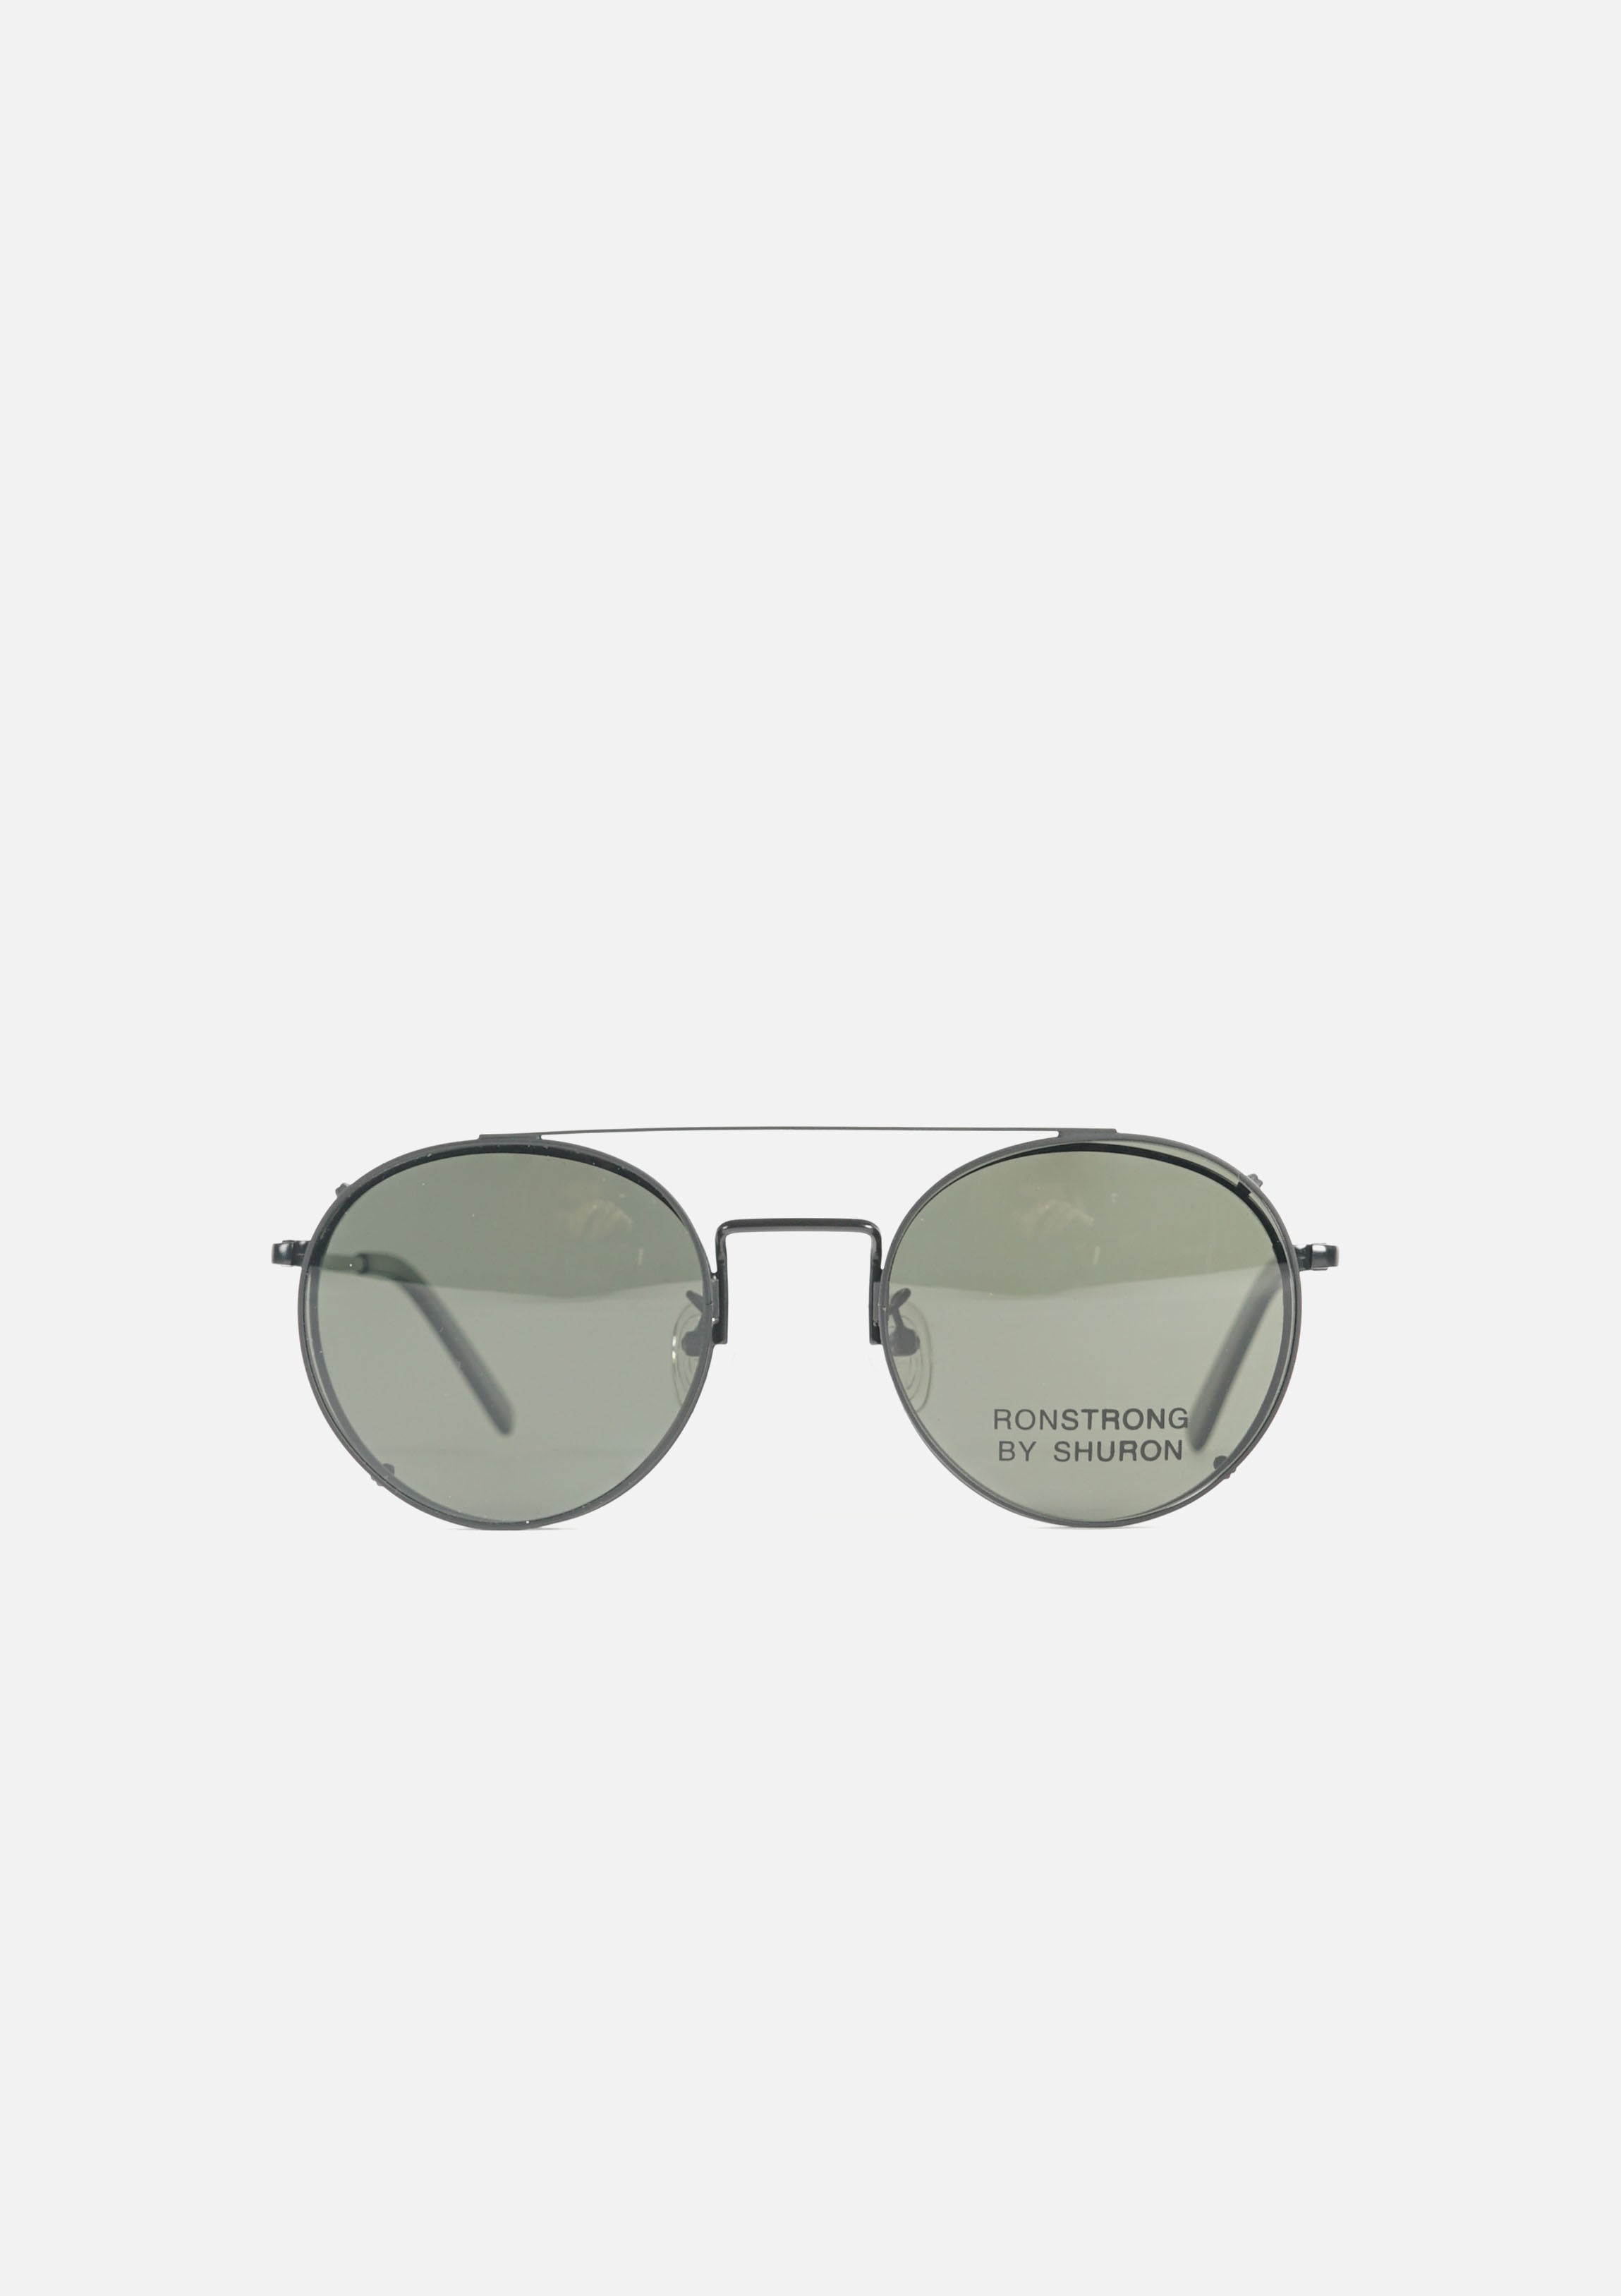 RONSTRONG Clip on Sunglasses Black